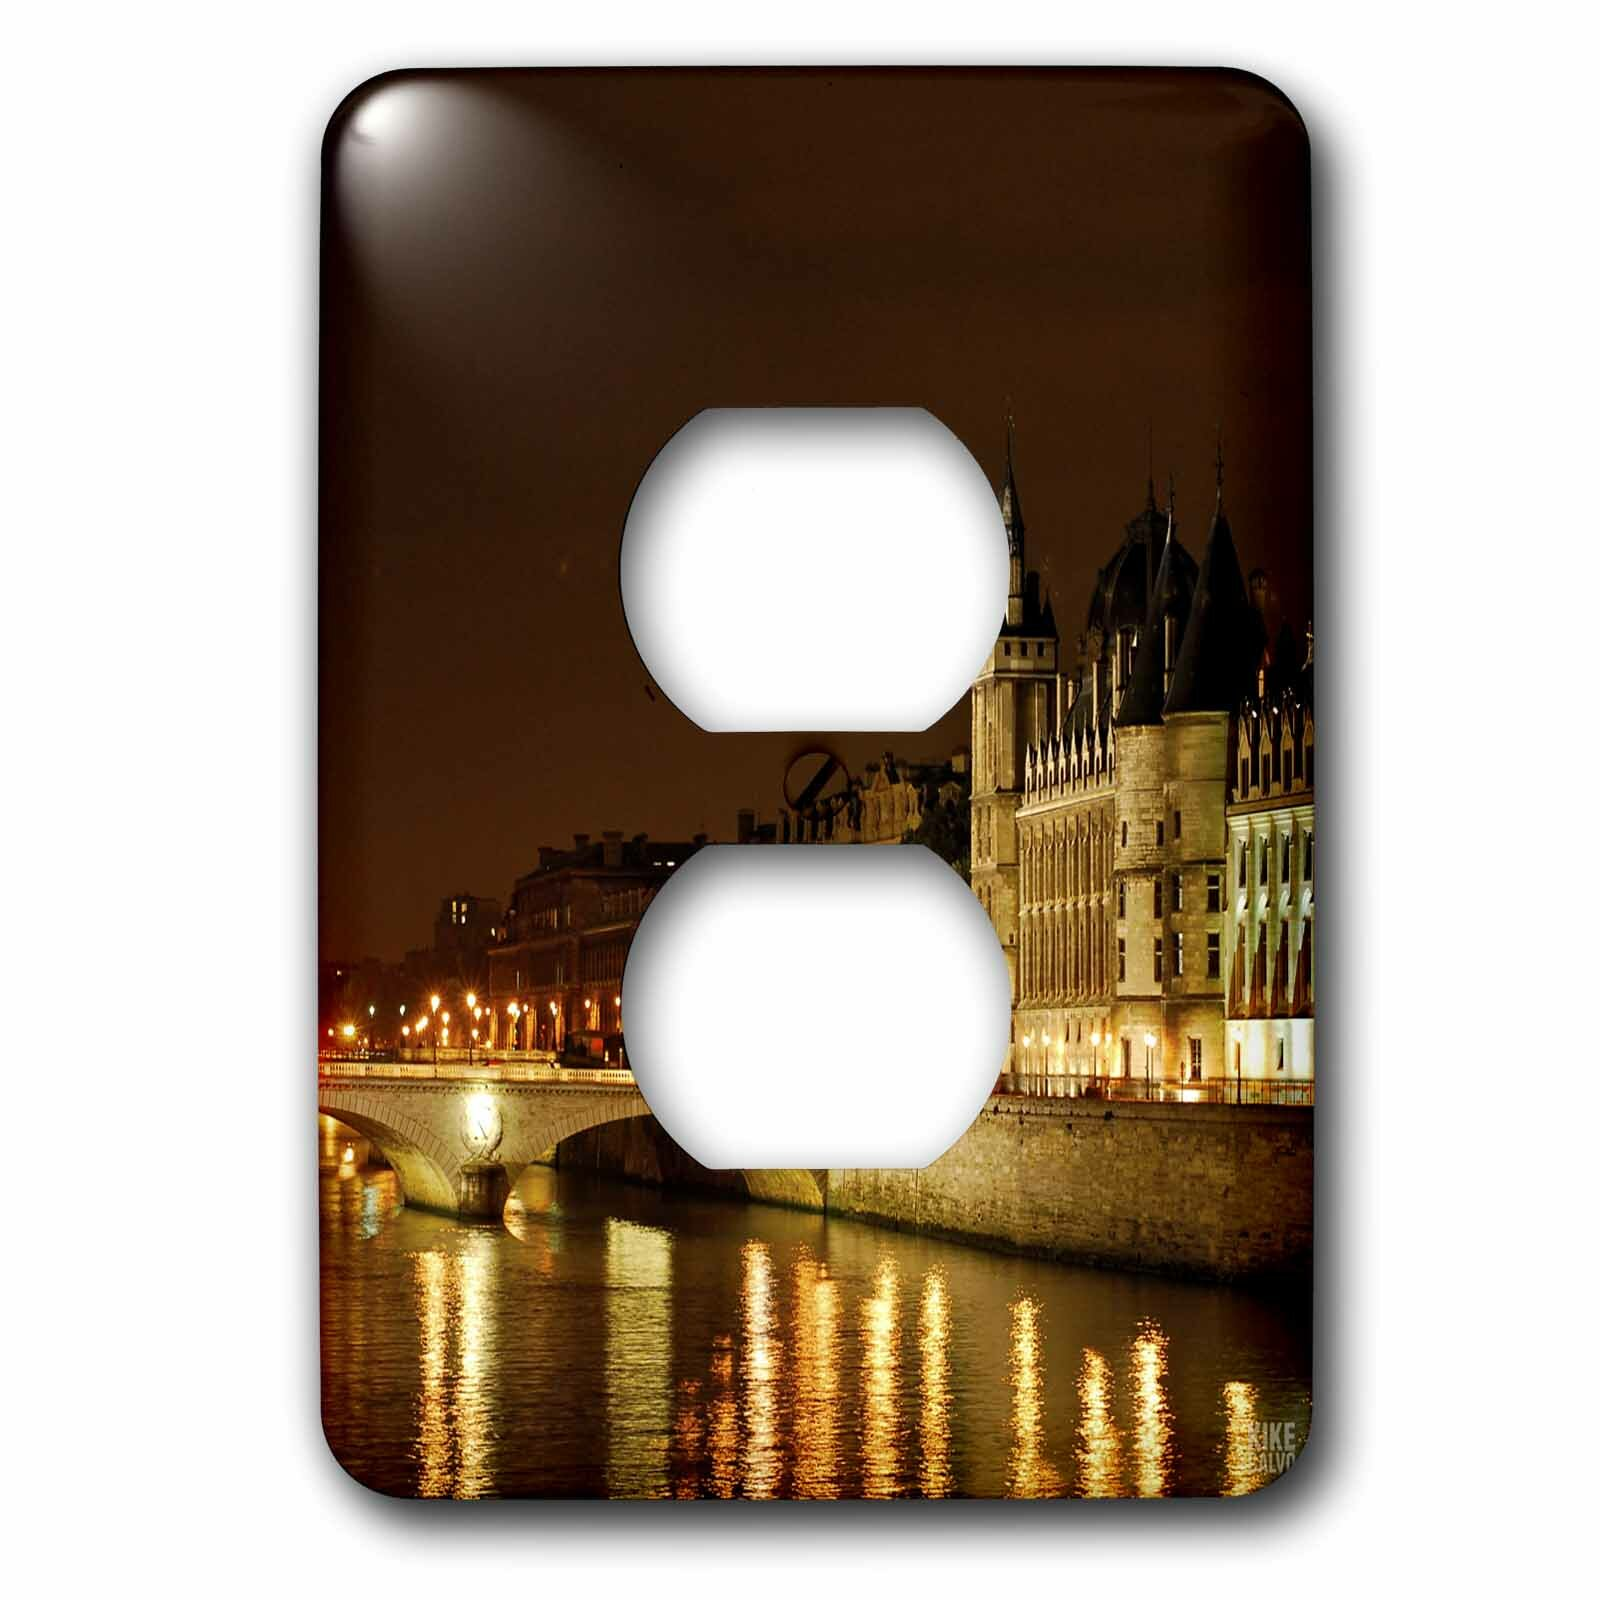 3drose Paris France Paris And The Seine River At Night 1 Gang Duplex Outlet Wall Plate